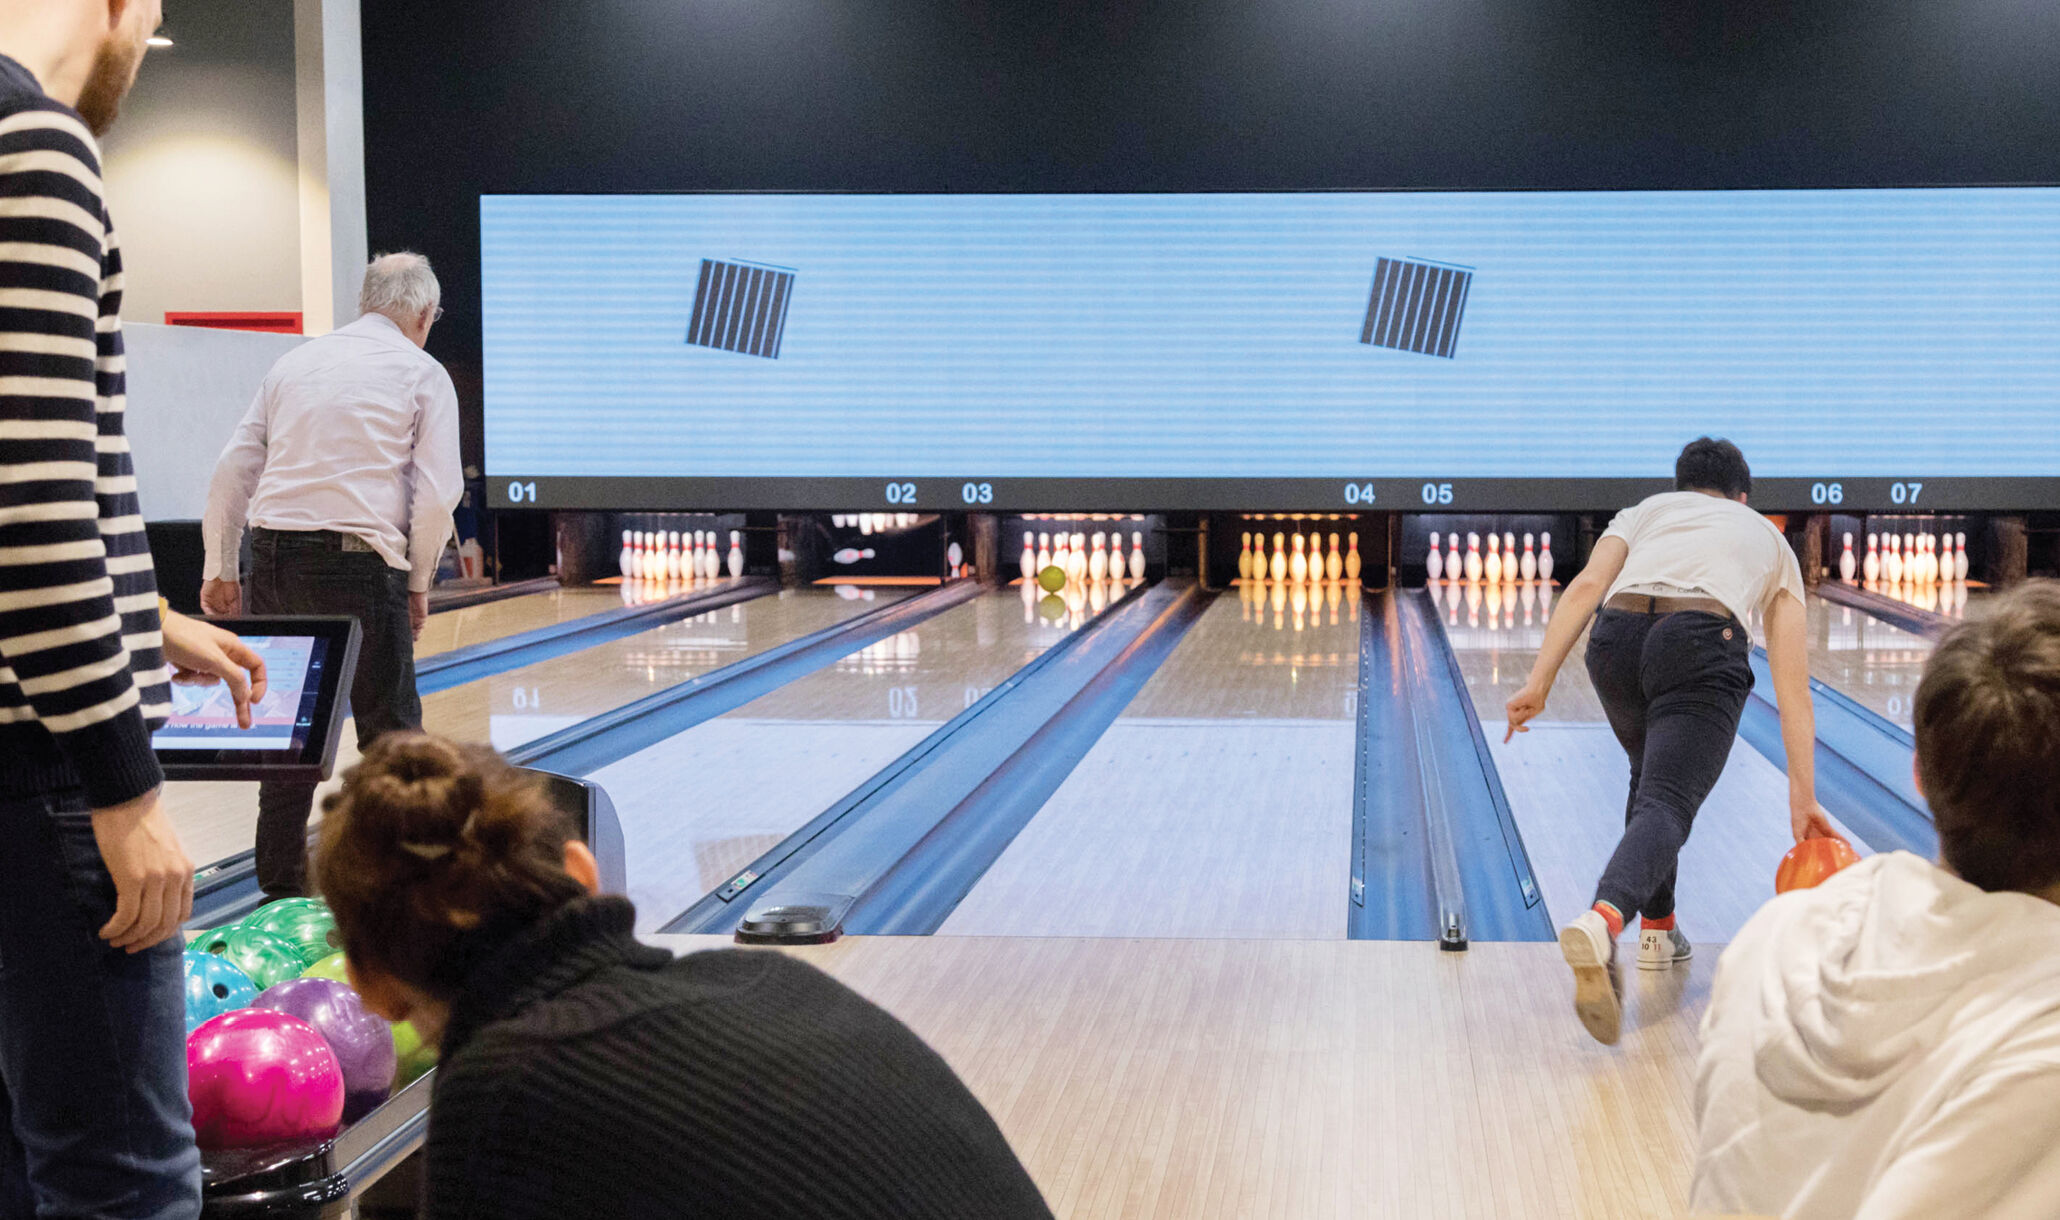 1055 Bourg, Bourg En Bresse, France - Customers Bowling-1